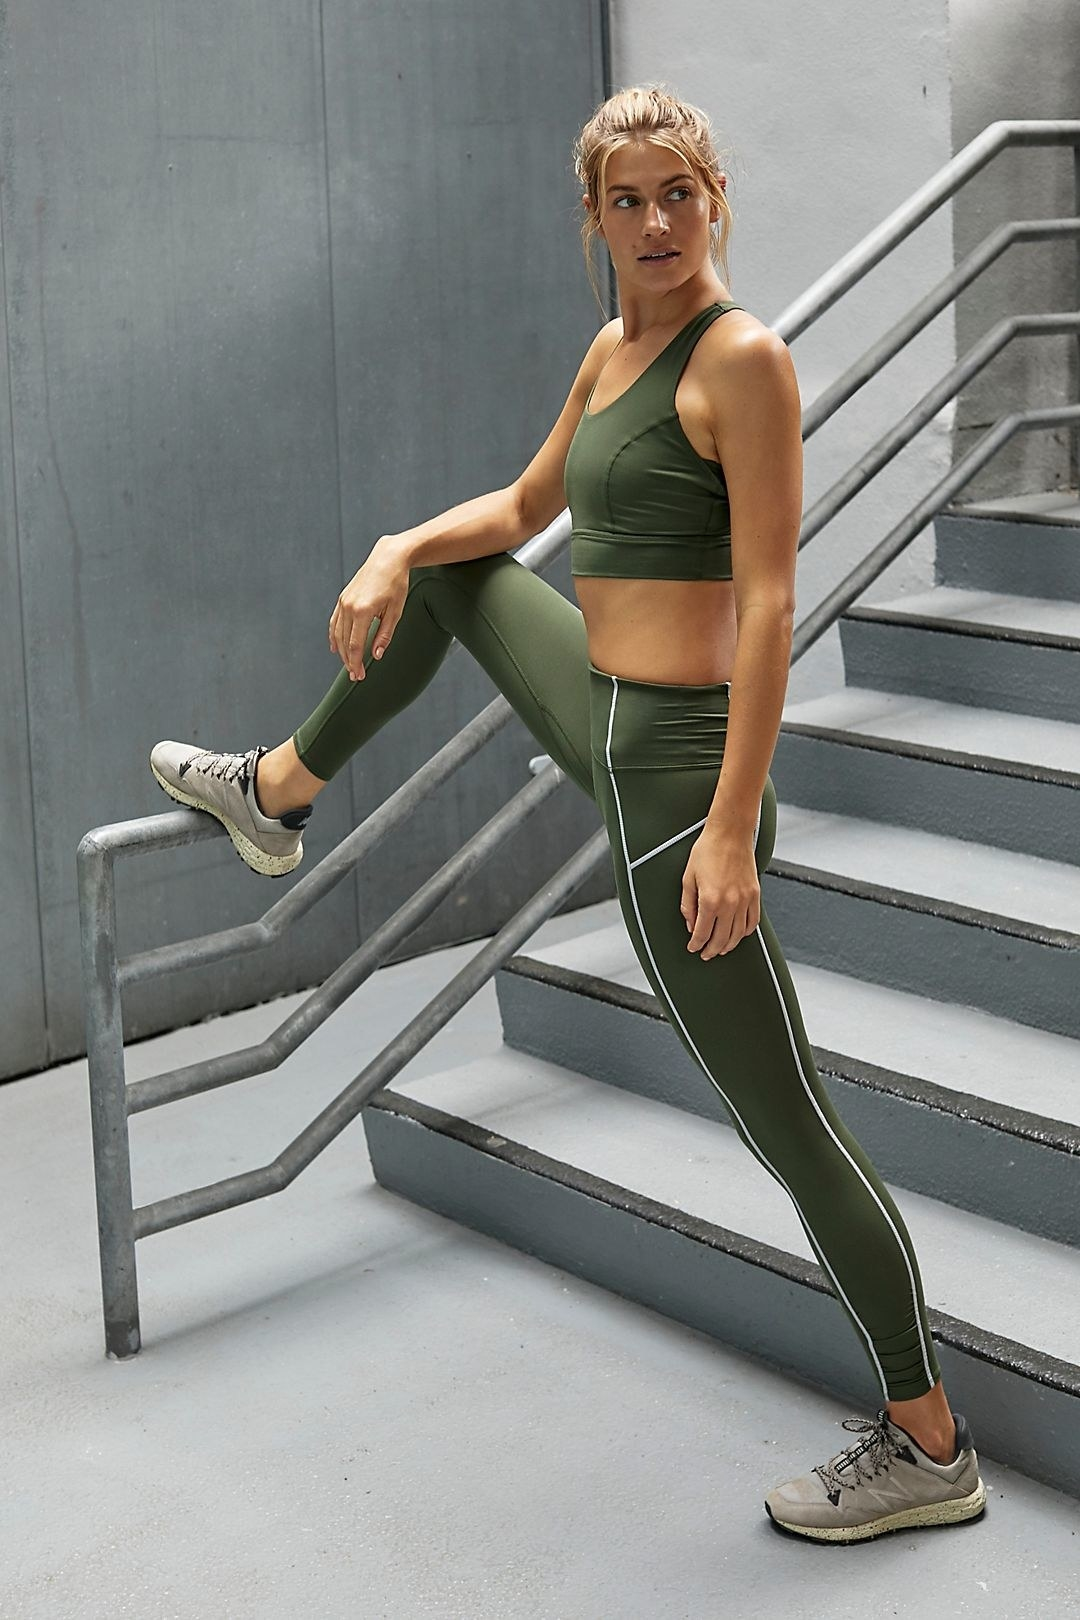 Model wearing olive green leggings with white piping